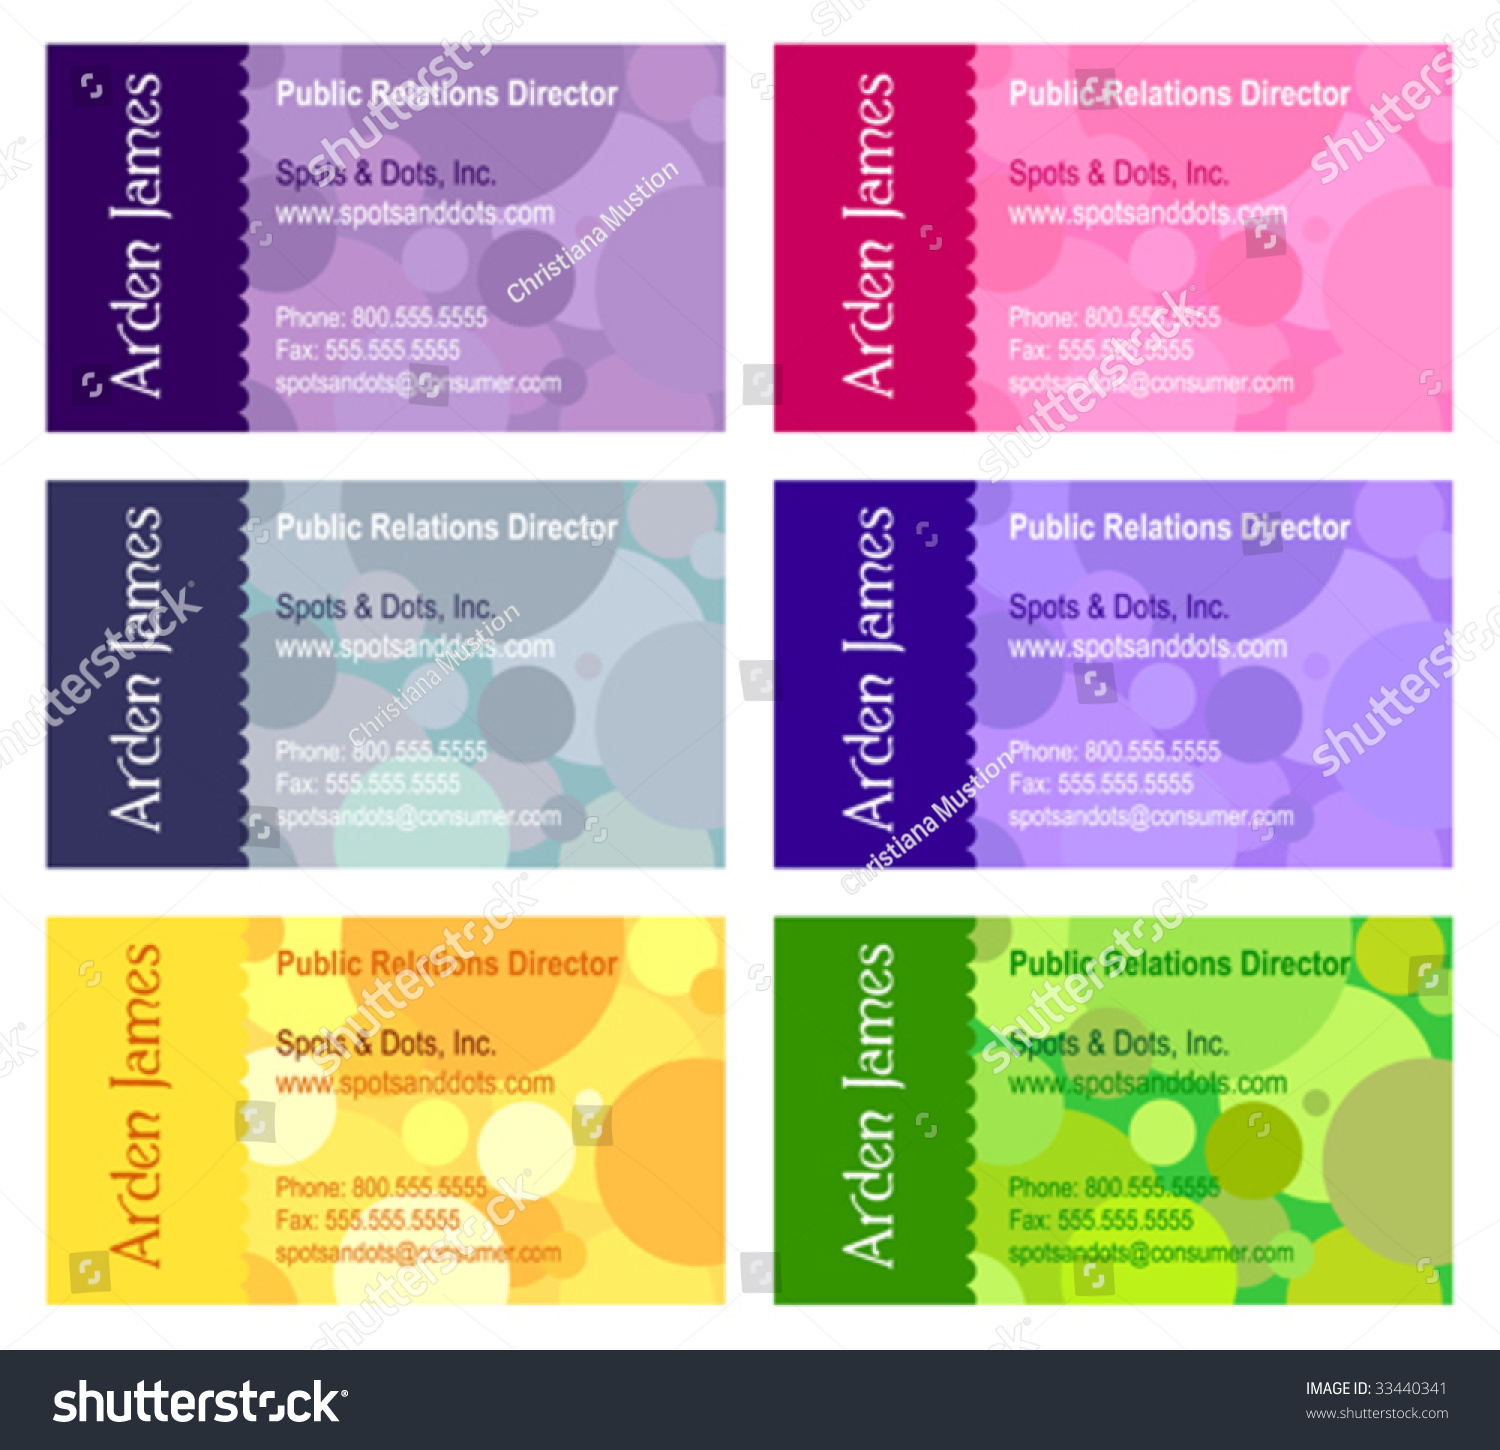 Sample business cards stock vector 33440341 shutterstock sample of business cards magicingreecefo Gallery